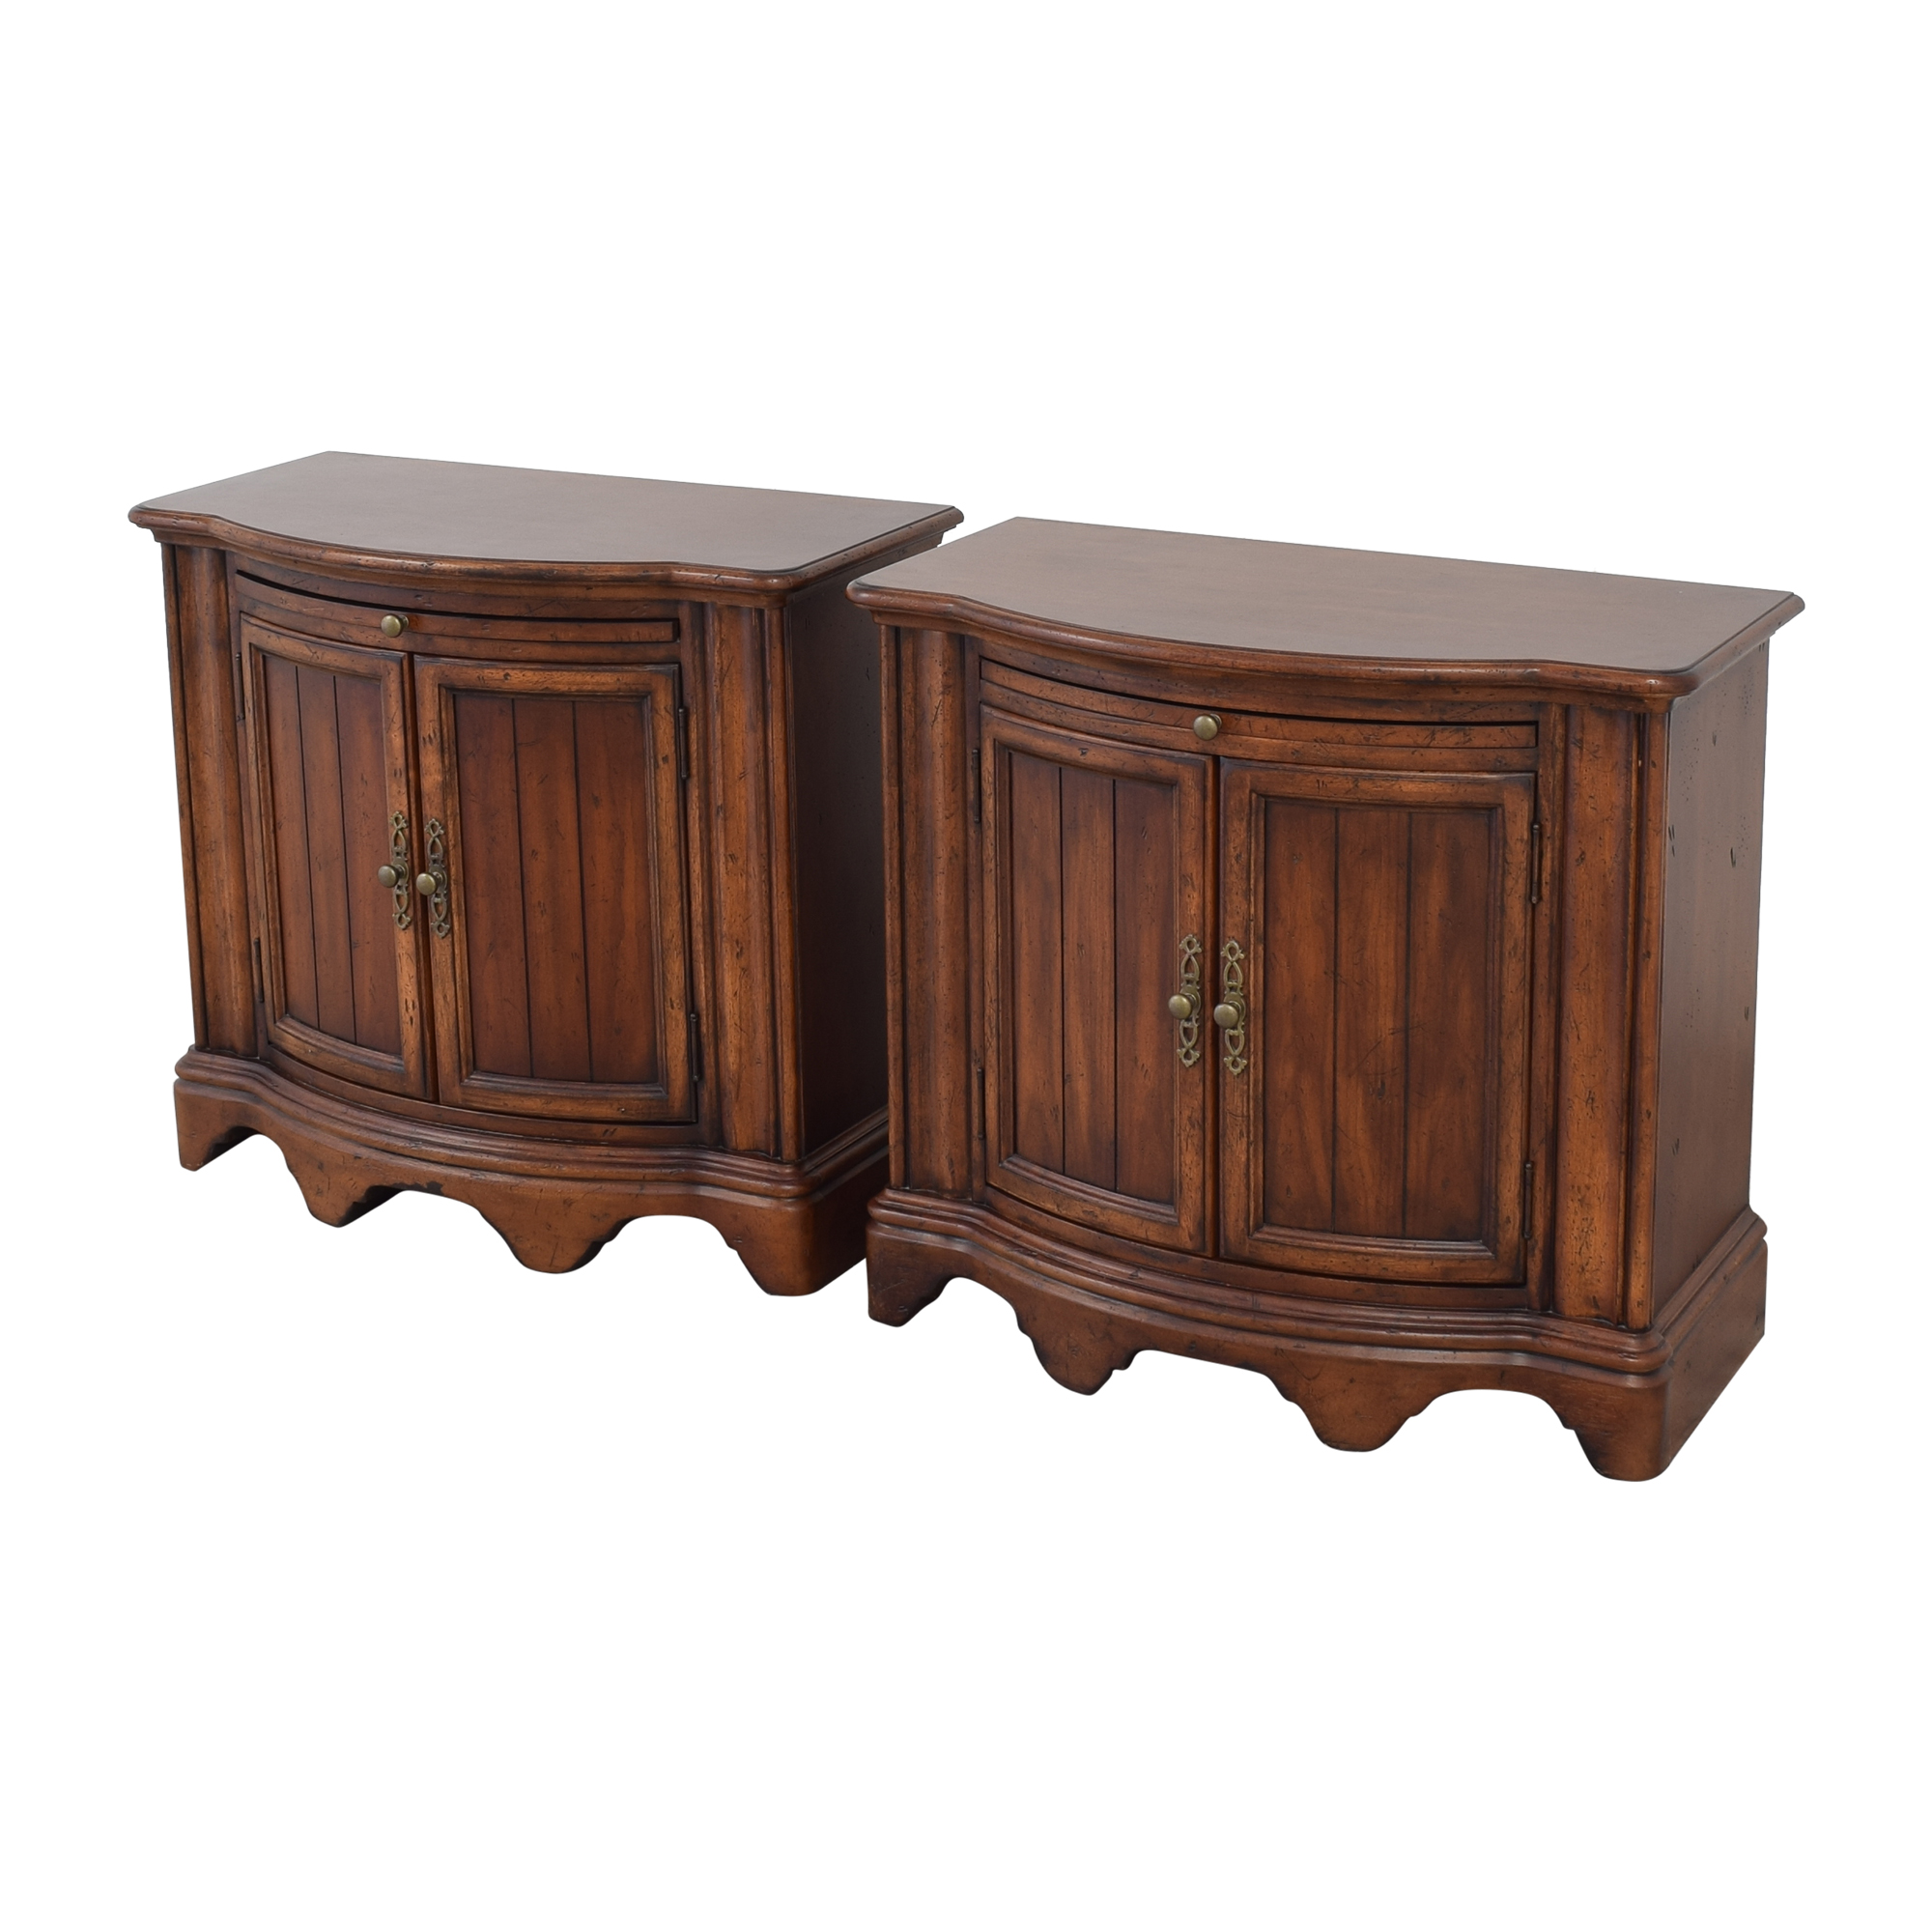 Universal Furniture Universal Furniture Nightstands nj